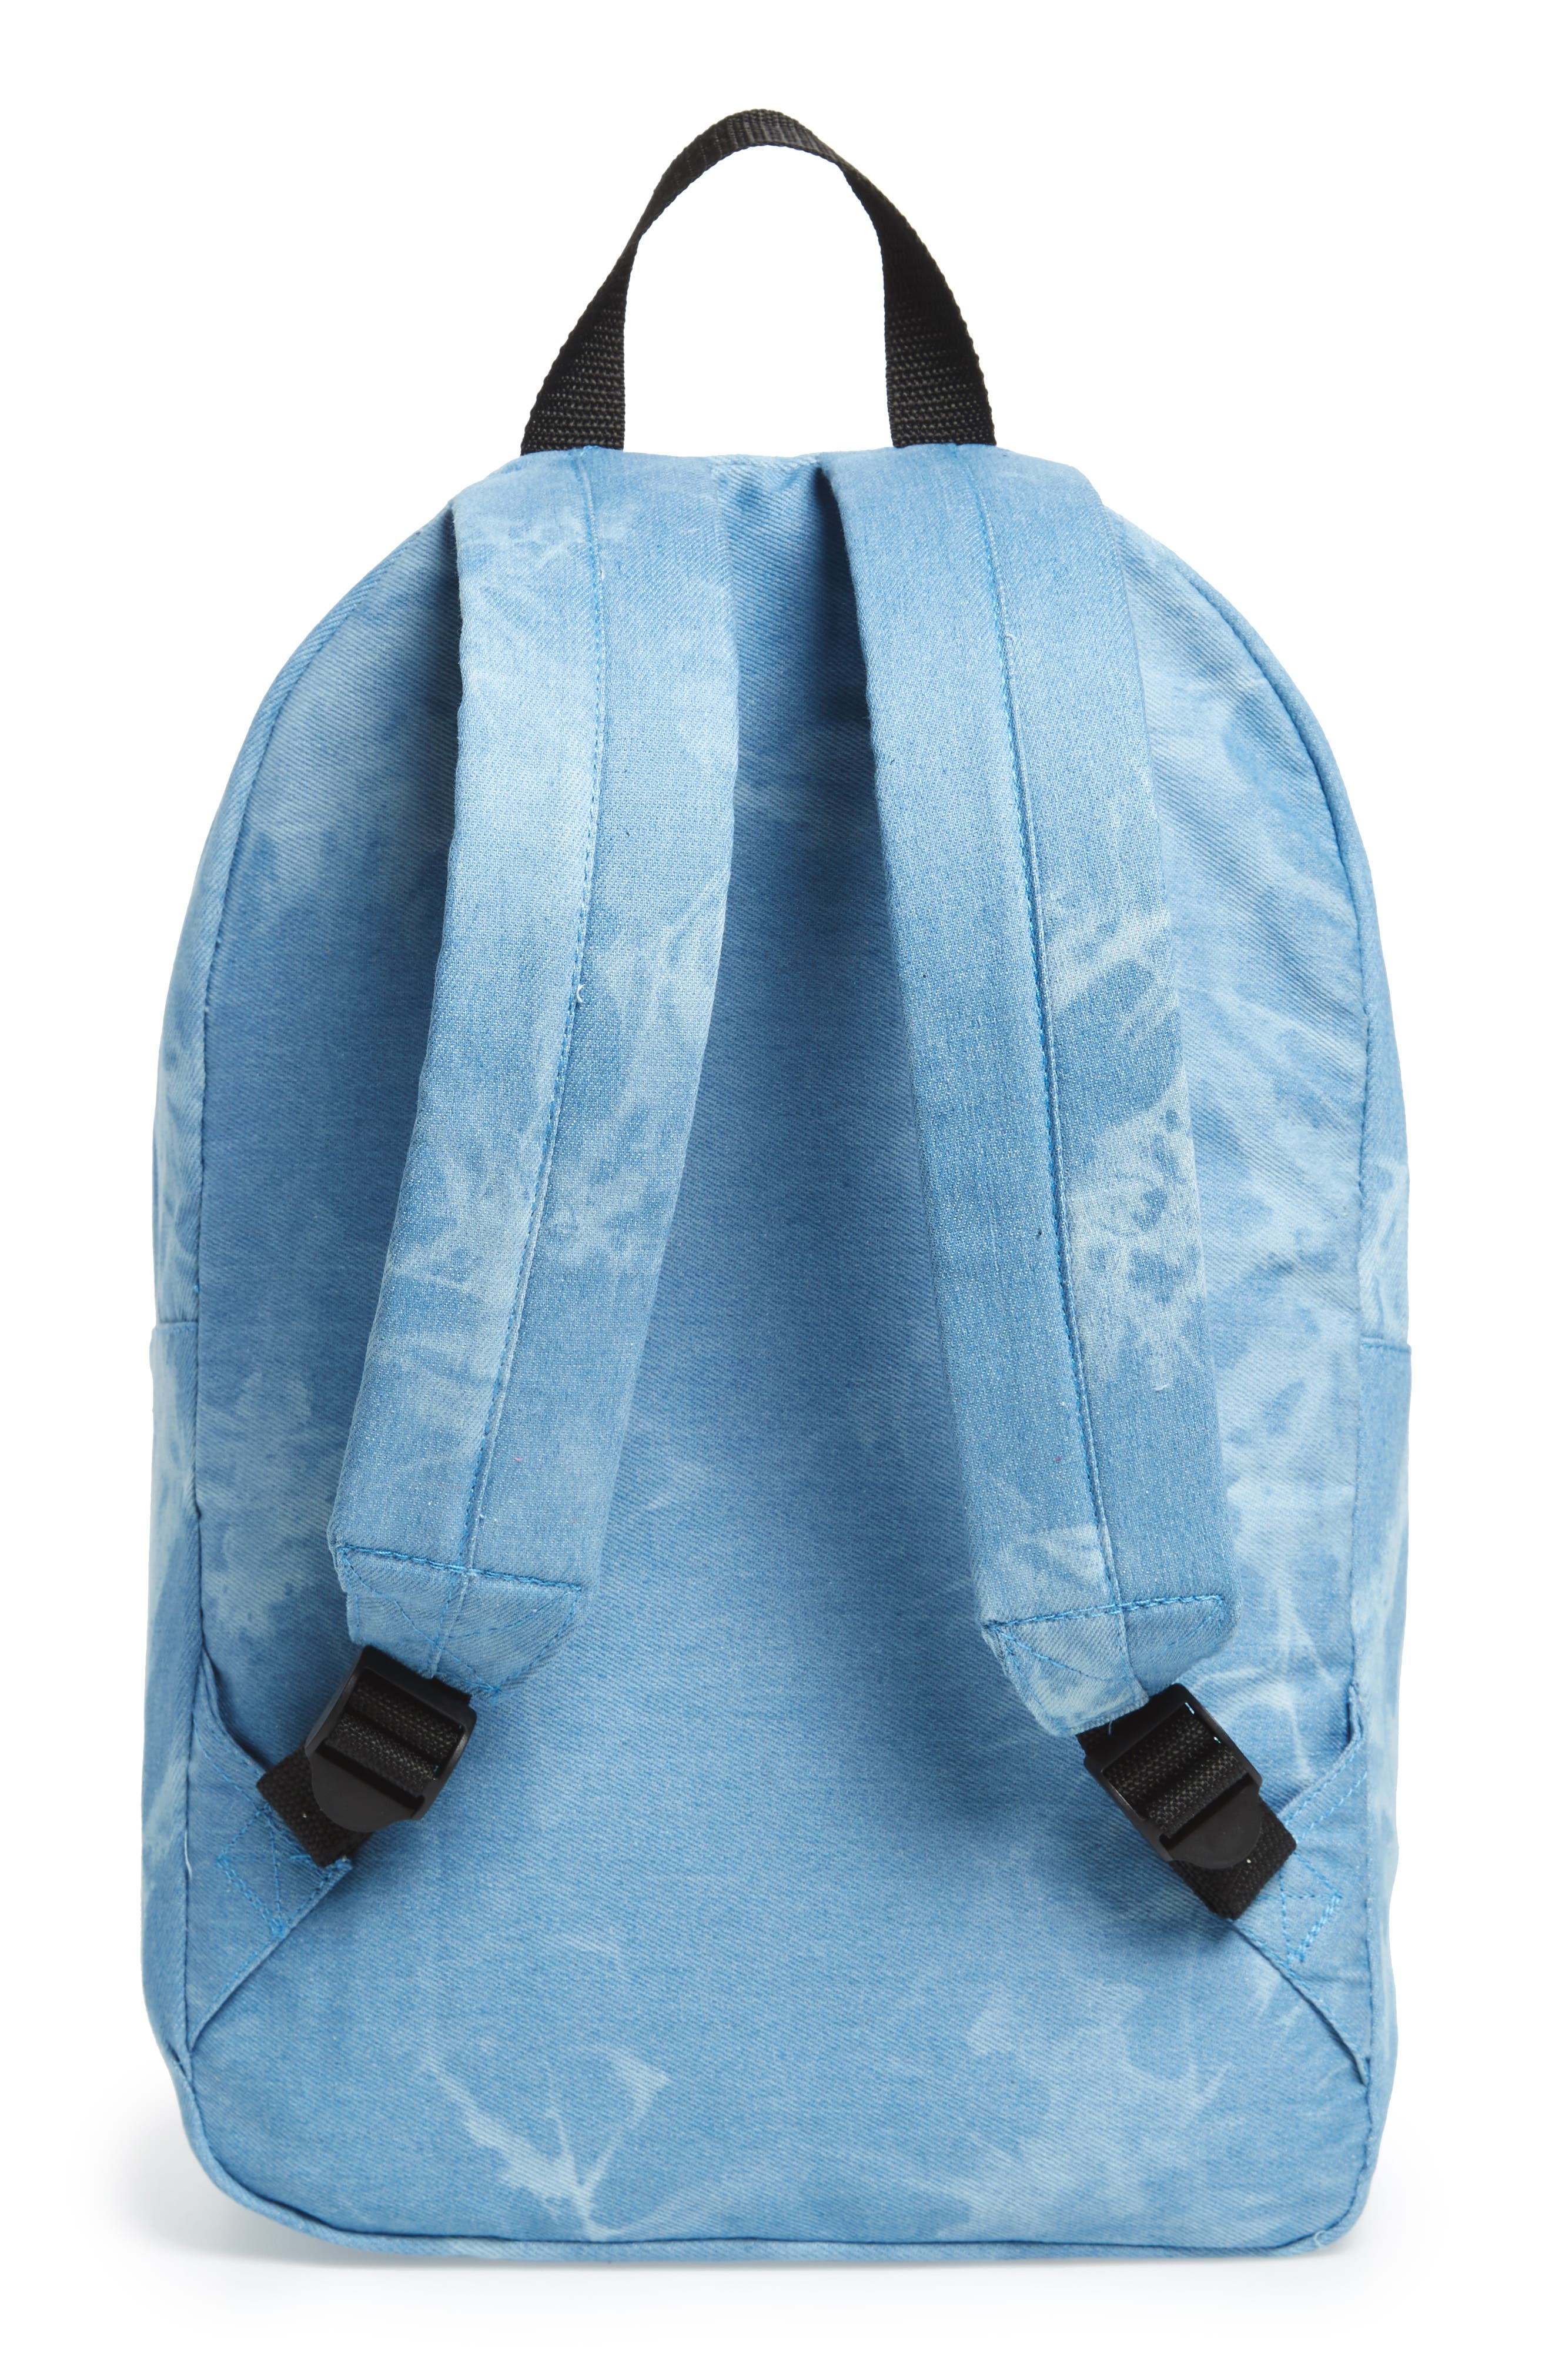 Accessory Collective Tie Dye Backpack,                             Alternate thumbnail 2, color,                             400